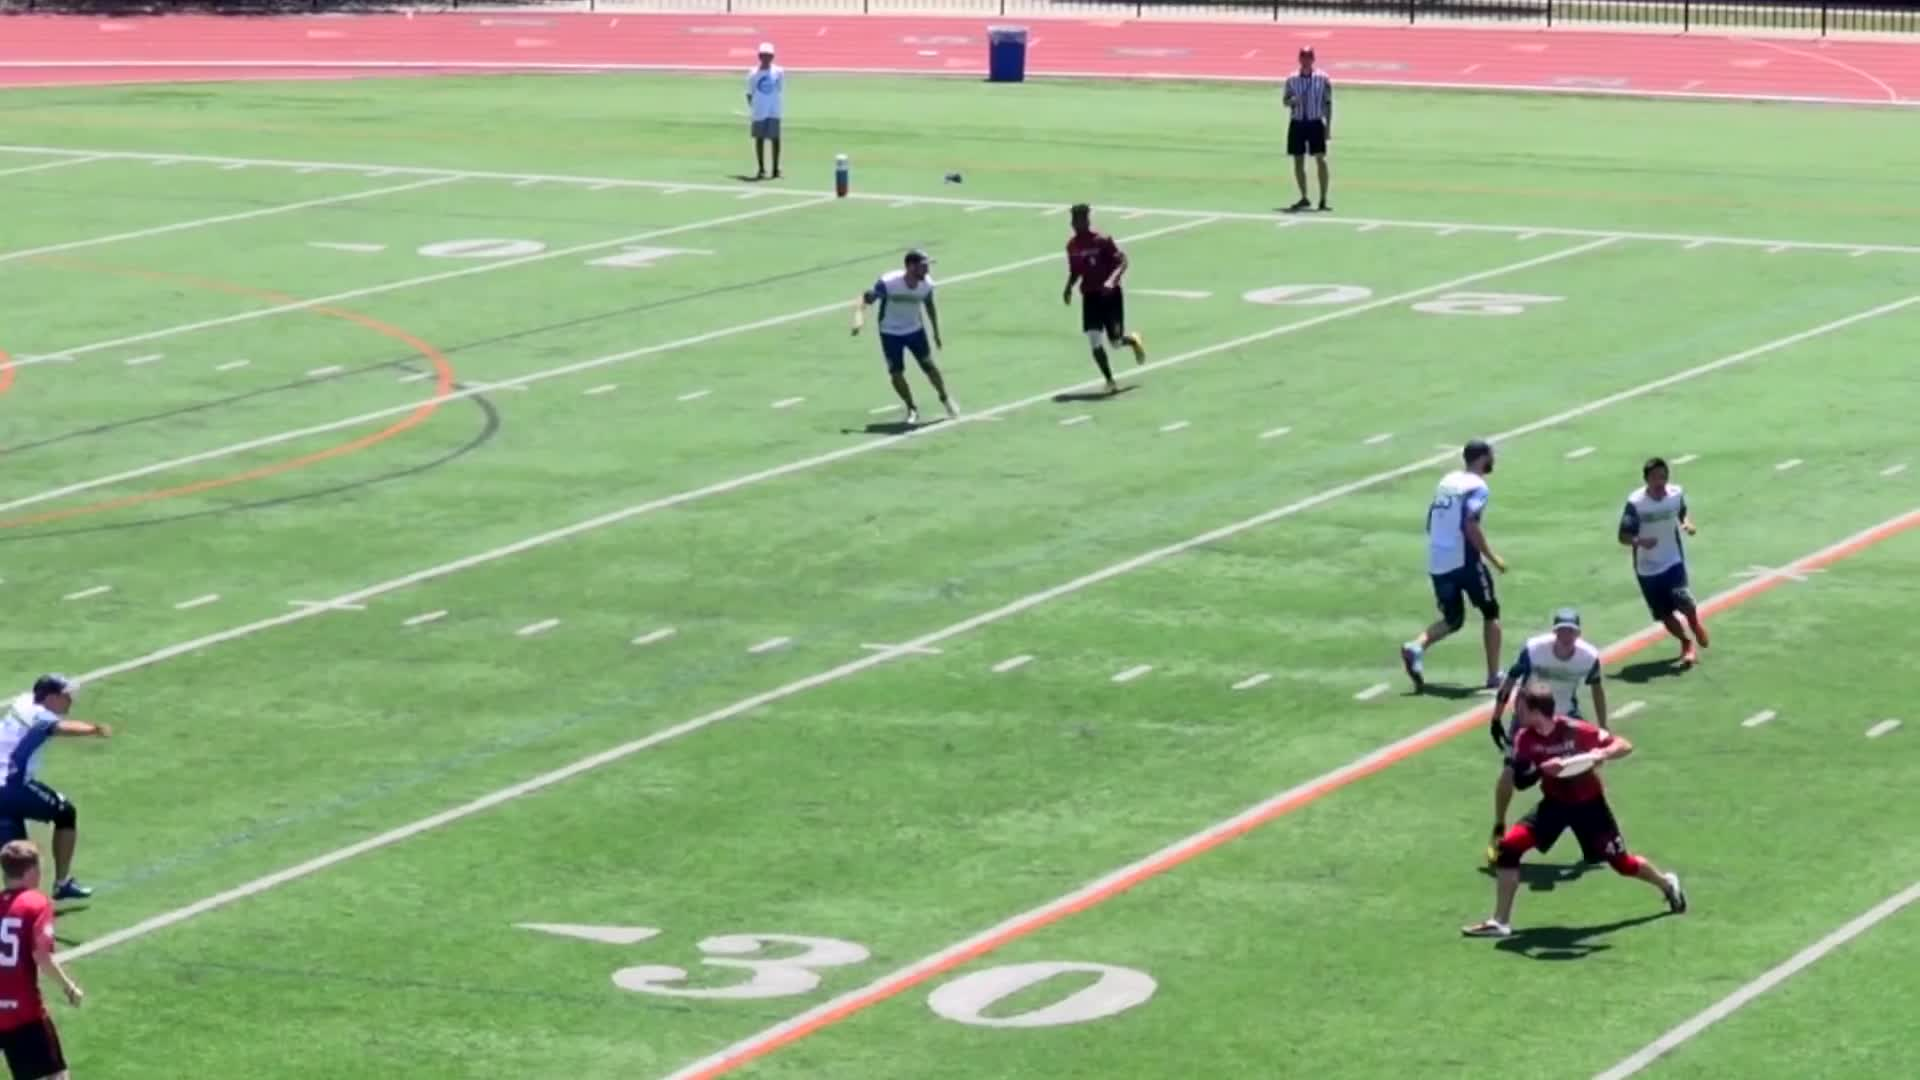 american ultimate disc league, audl, ultimate, ultimate frisbee, Full Extension Diving Goal GIFs